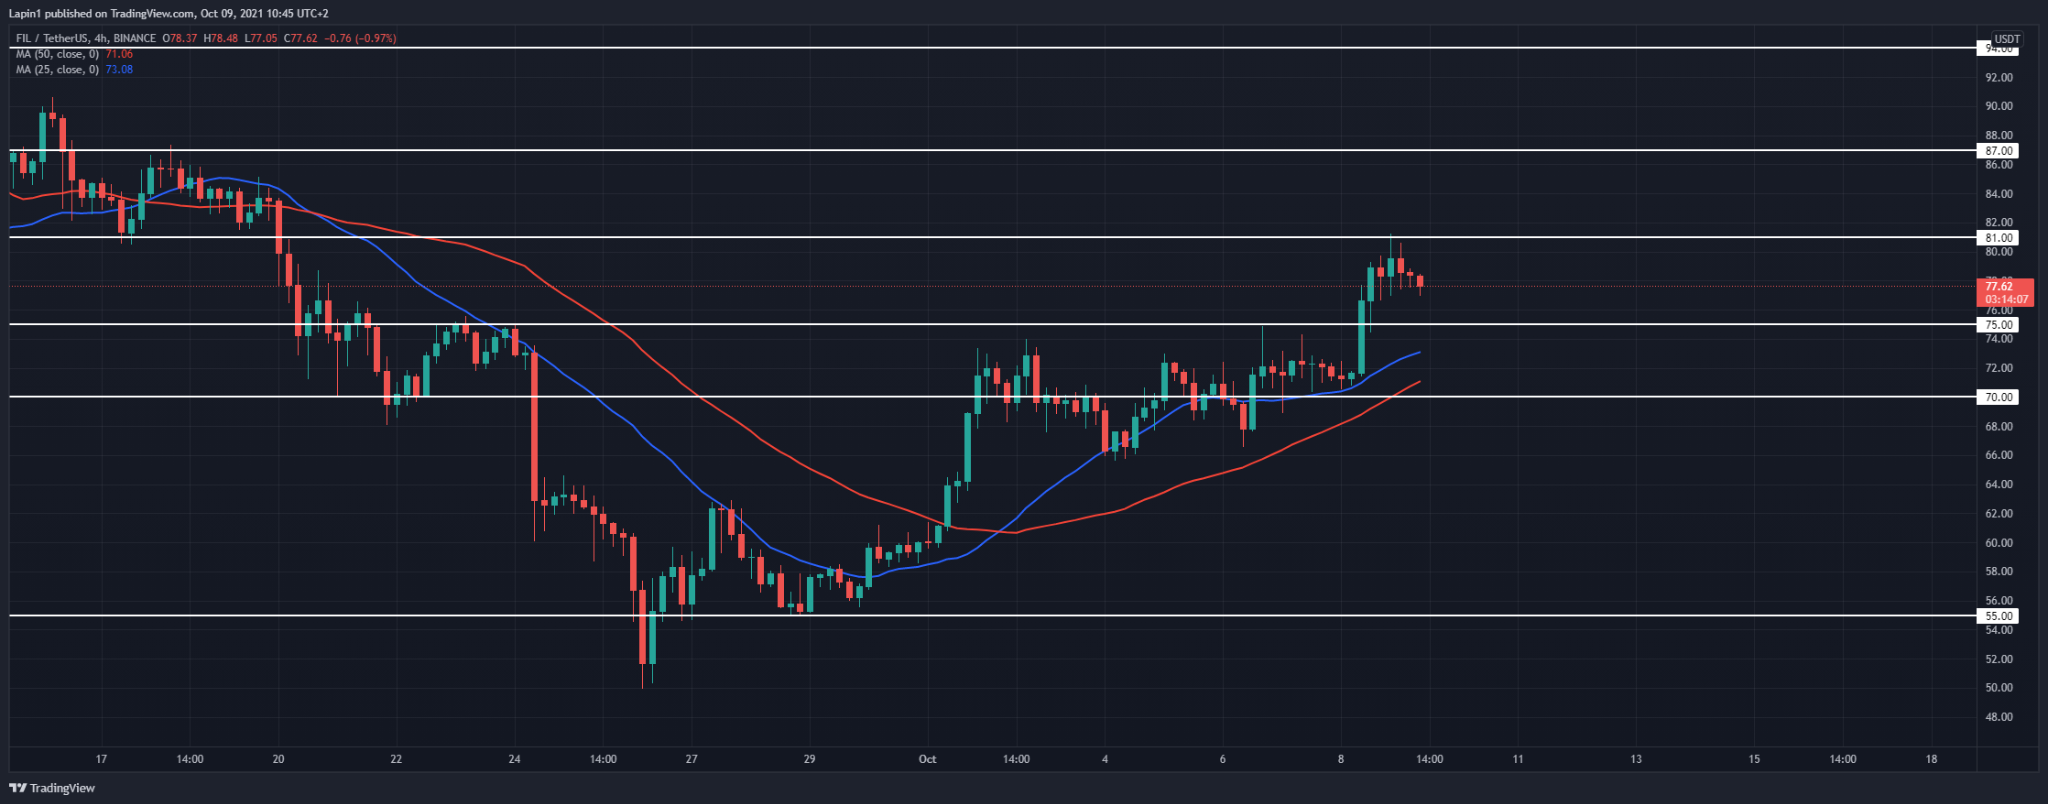 Filecoin Price Analysis: FIL spikes above $75, finds resistance at $81